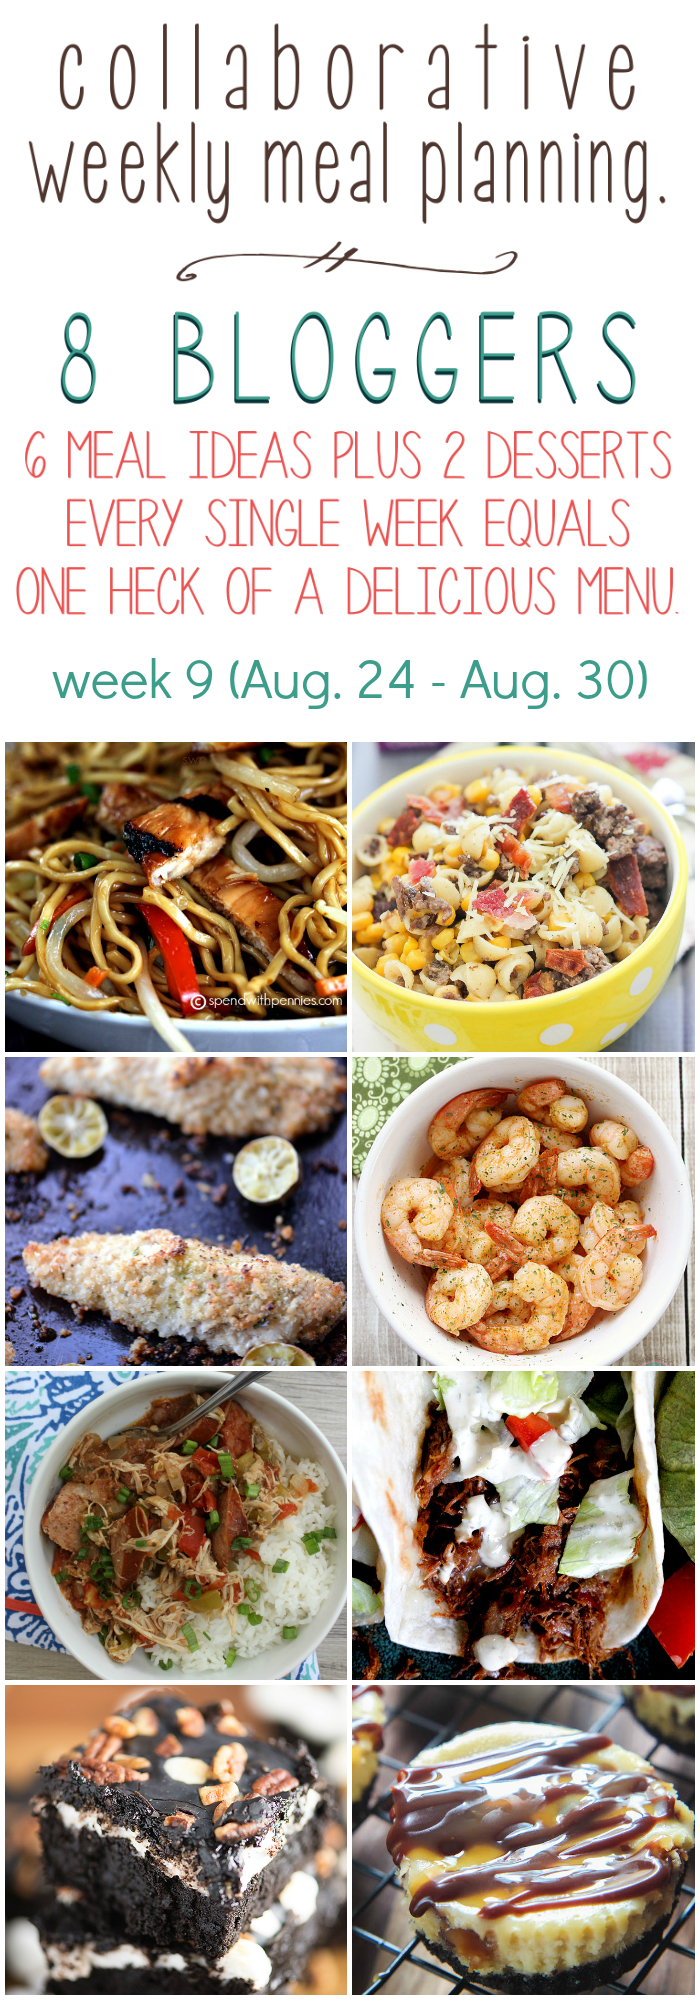 Collaborative weekly meal planning. 8 bloggers. 6 meal ideas plus 2 desserts every single week equals one heck of a delicious menu! week 9.